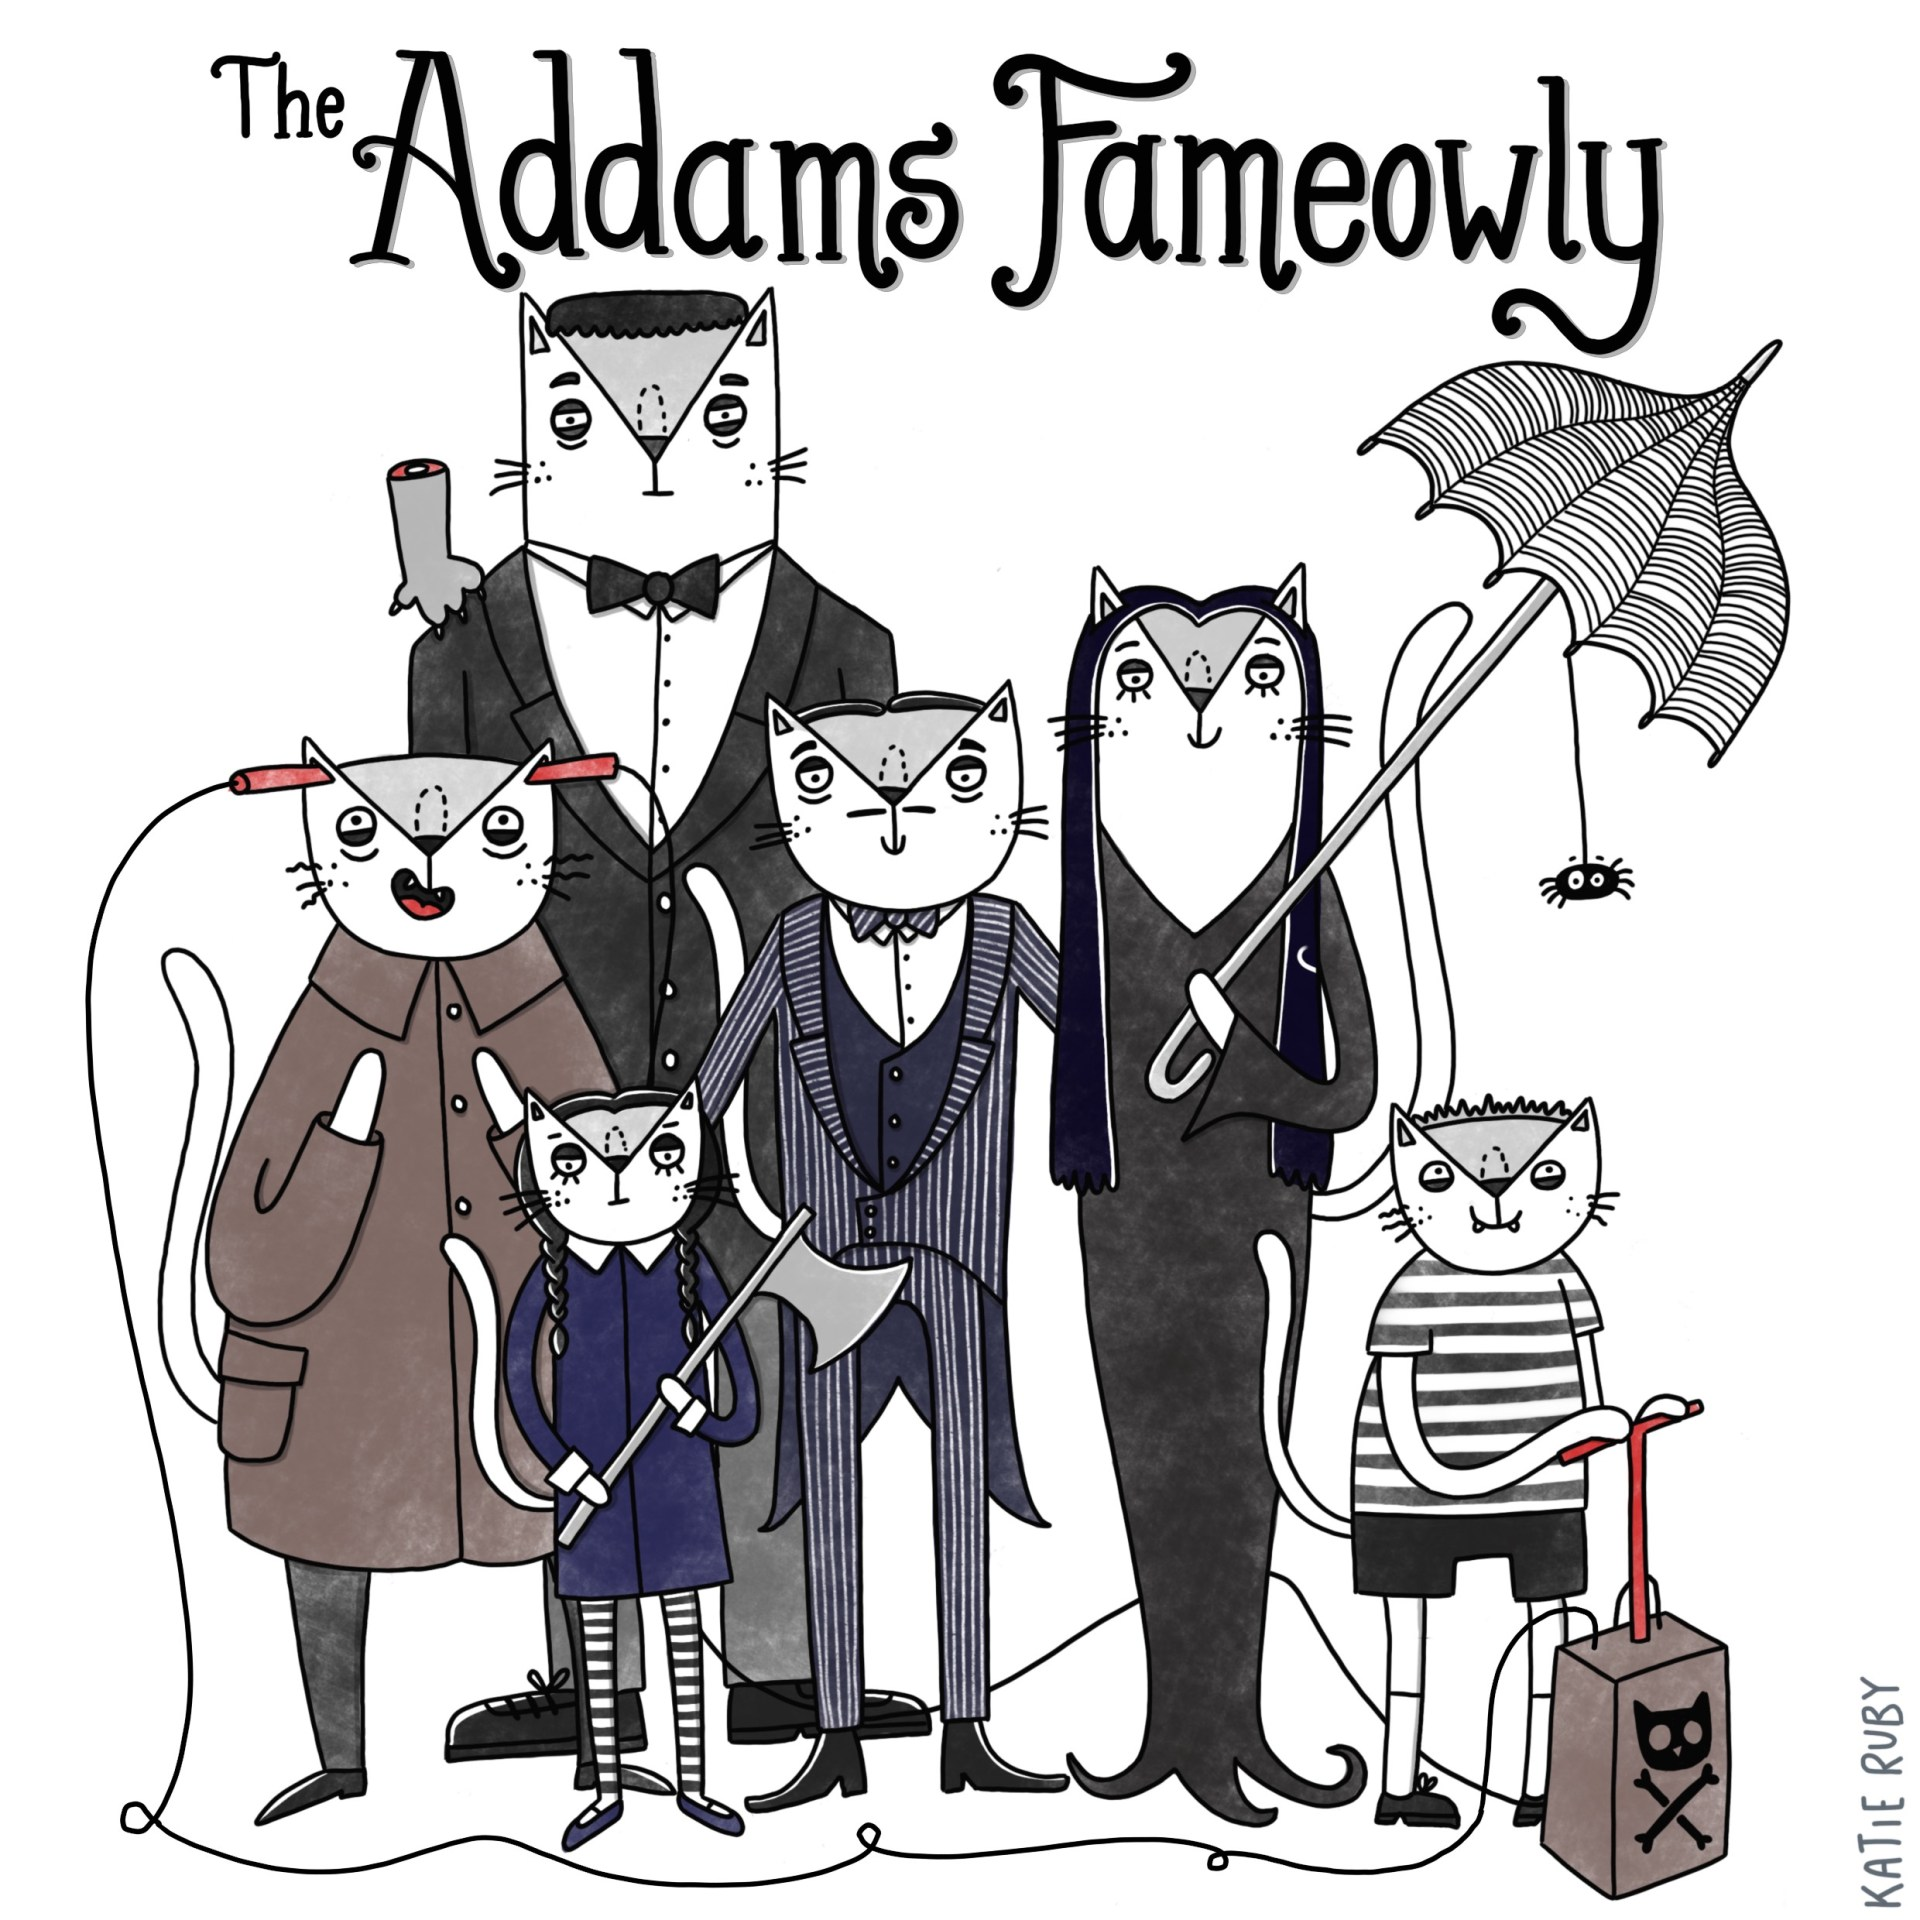 addams family cat pun